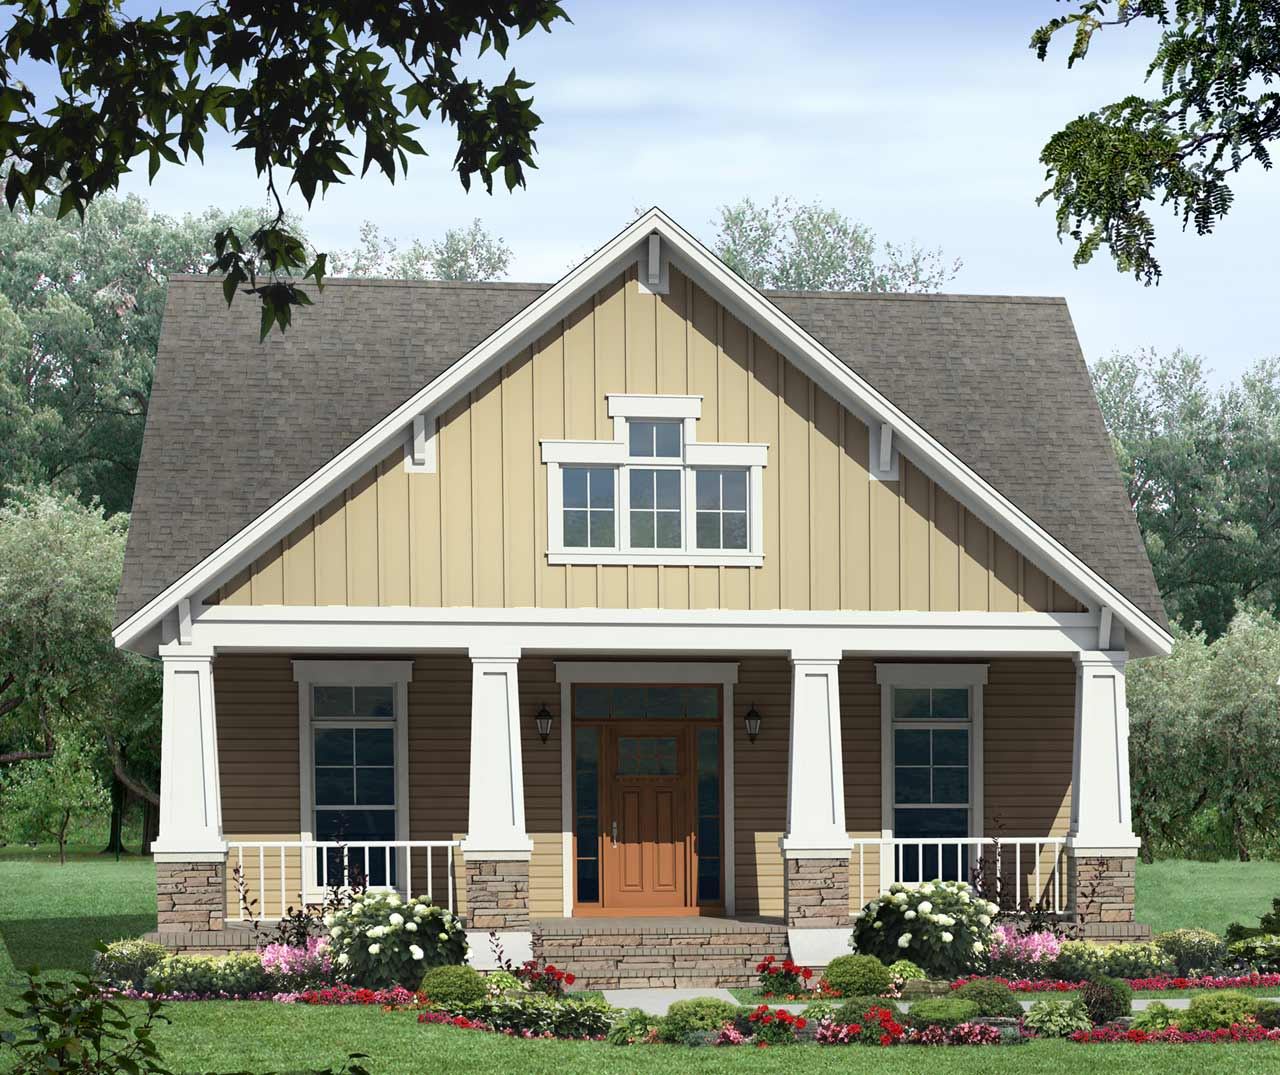 Bungalow Style House Plans Plan: 2-176